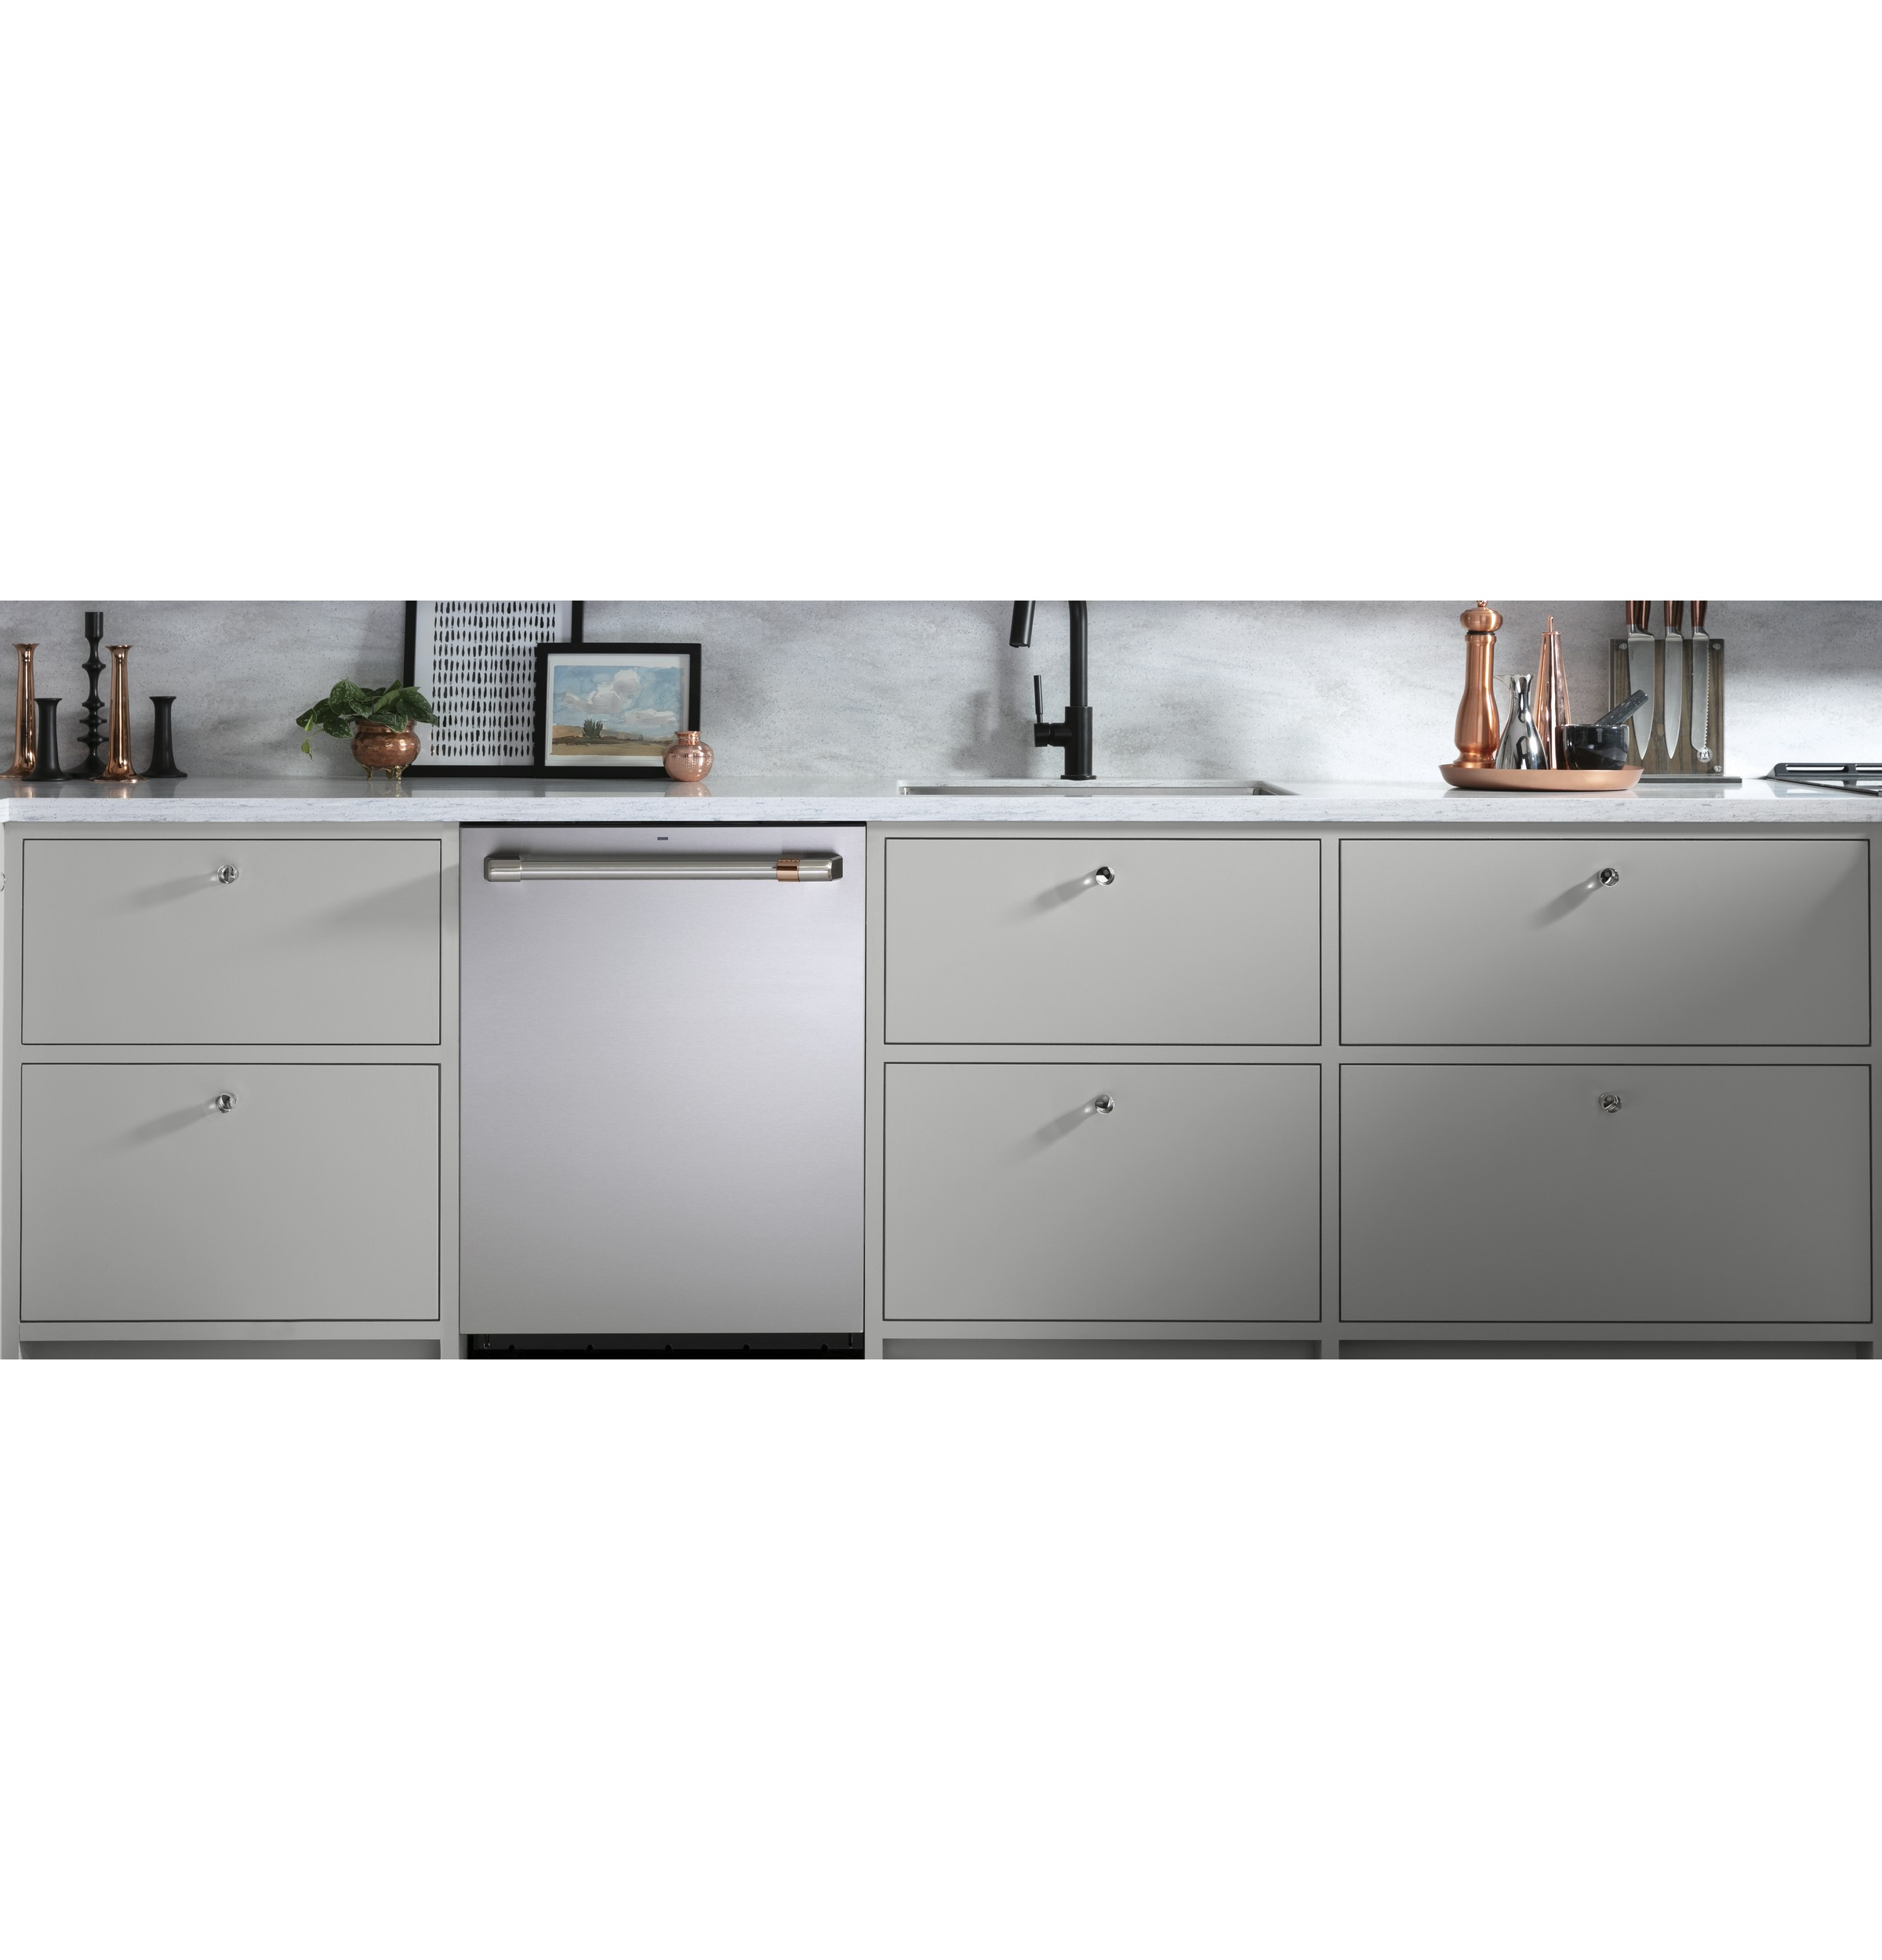 Model: CDT800P2NS1 | Cafe Café™ Stainless Steel Interior Dishwasher with Sanitization and Ultra Dry